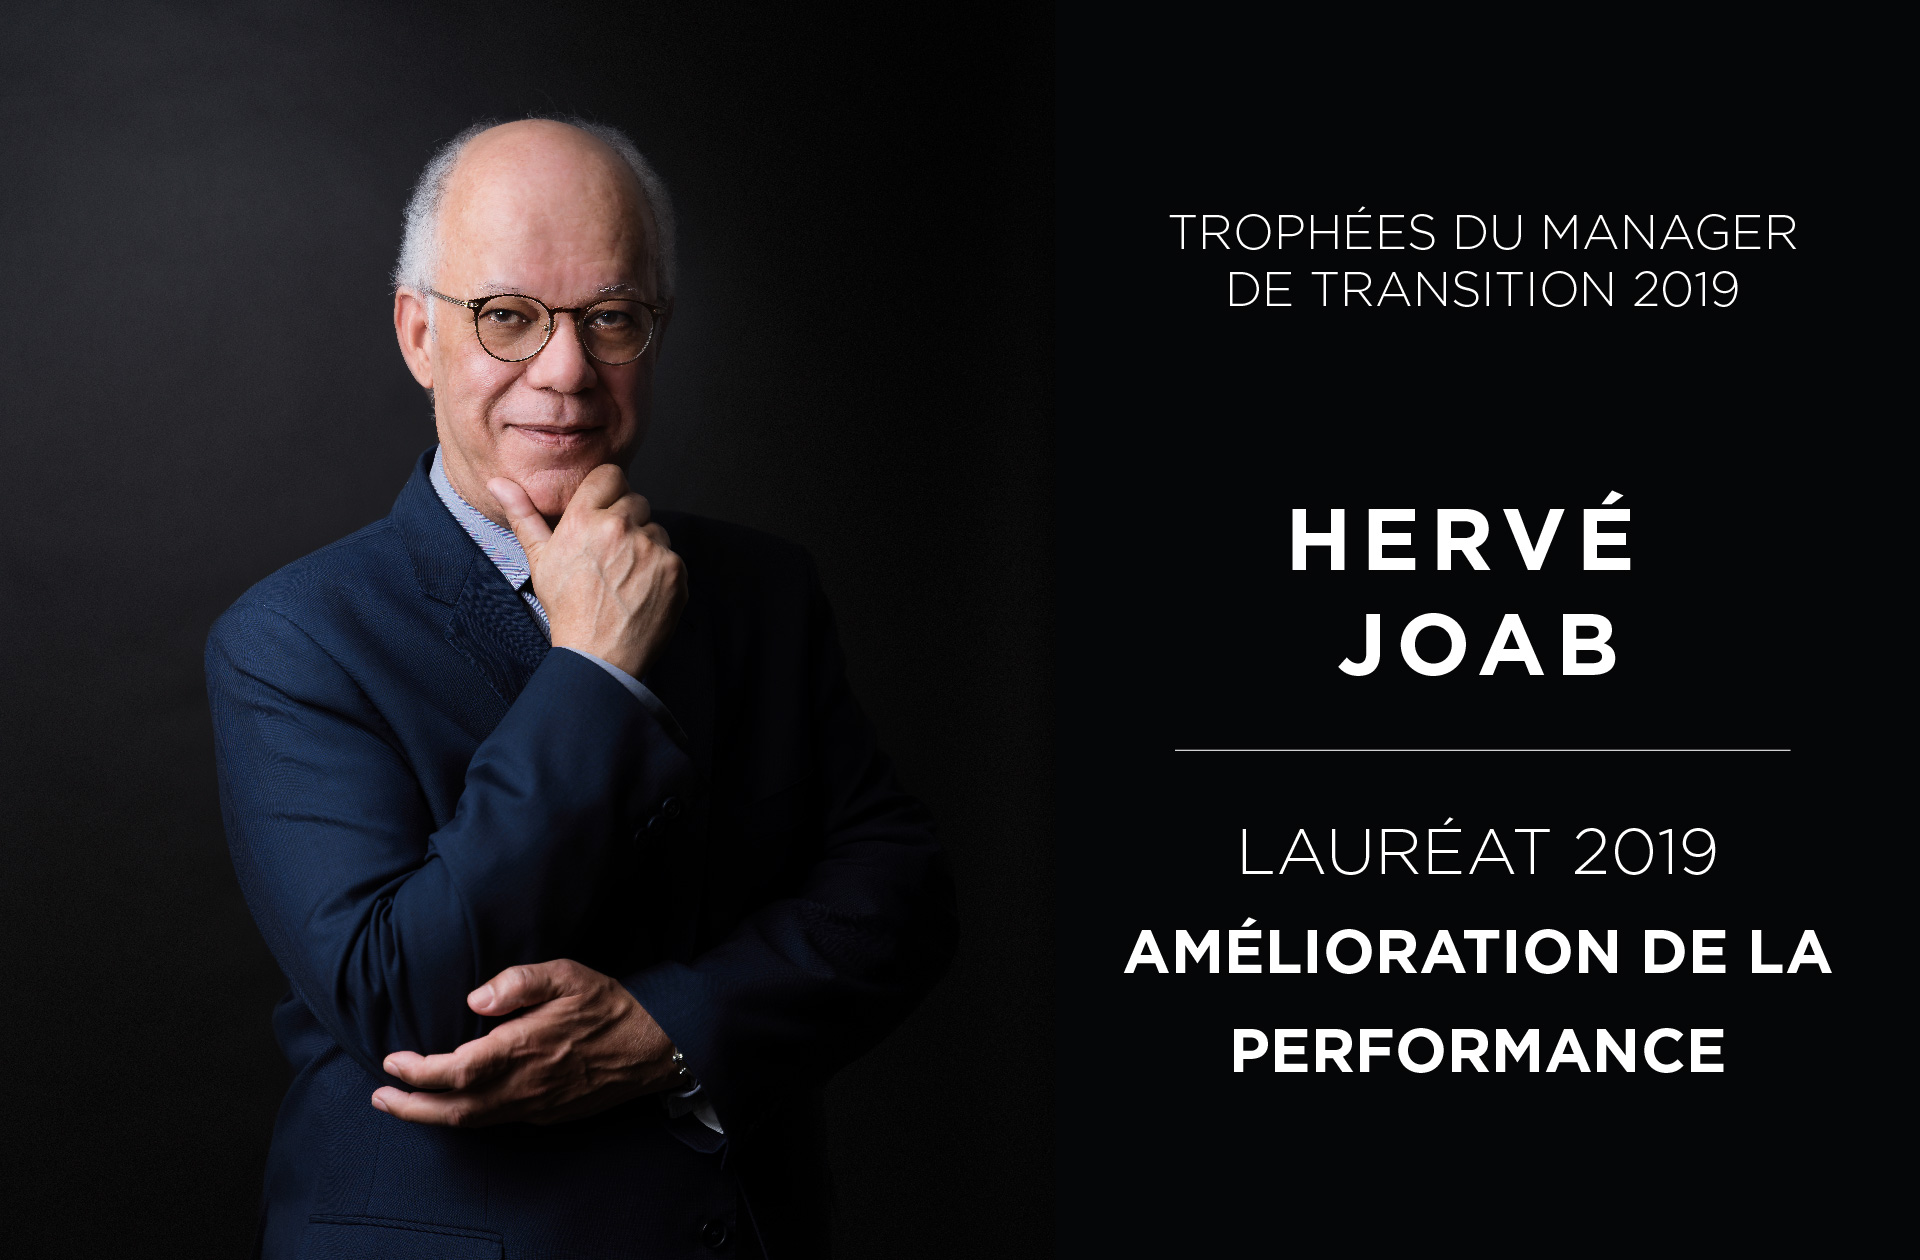 Portrait Hervé Joab - Trophées du Manager de Transition 2019 - Valtus Management de transition